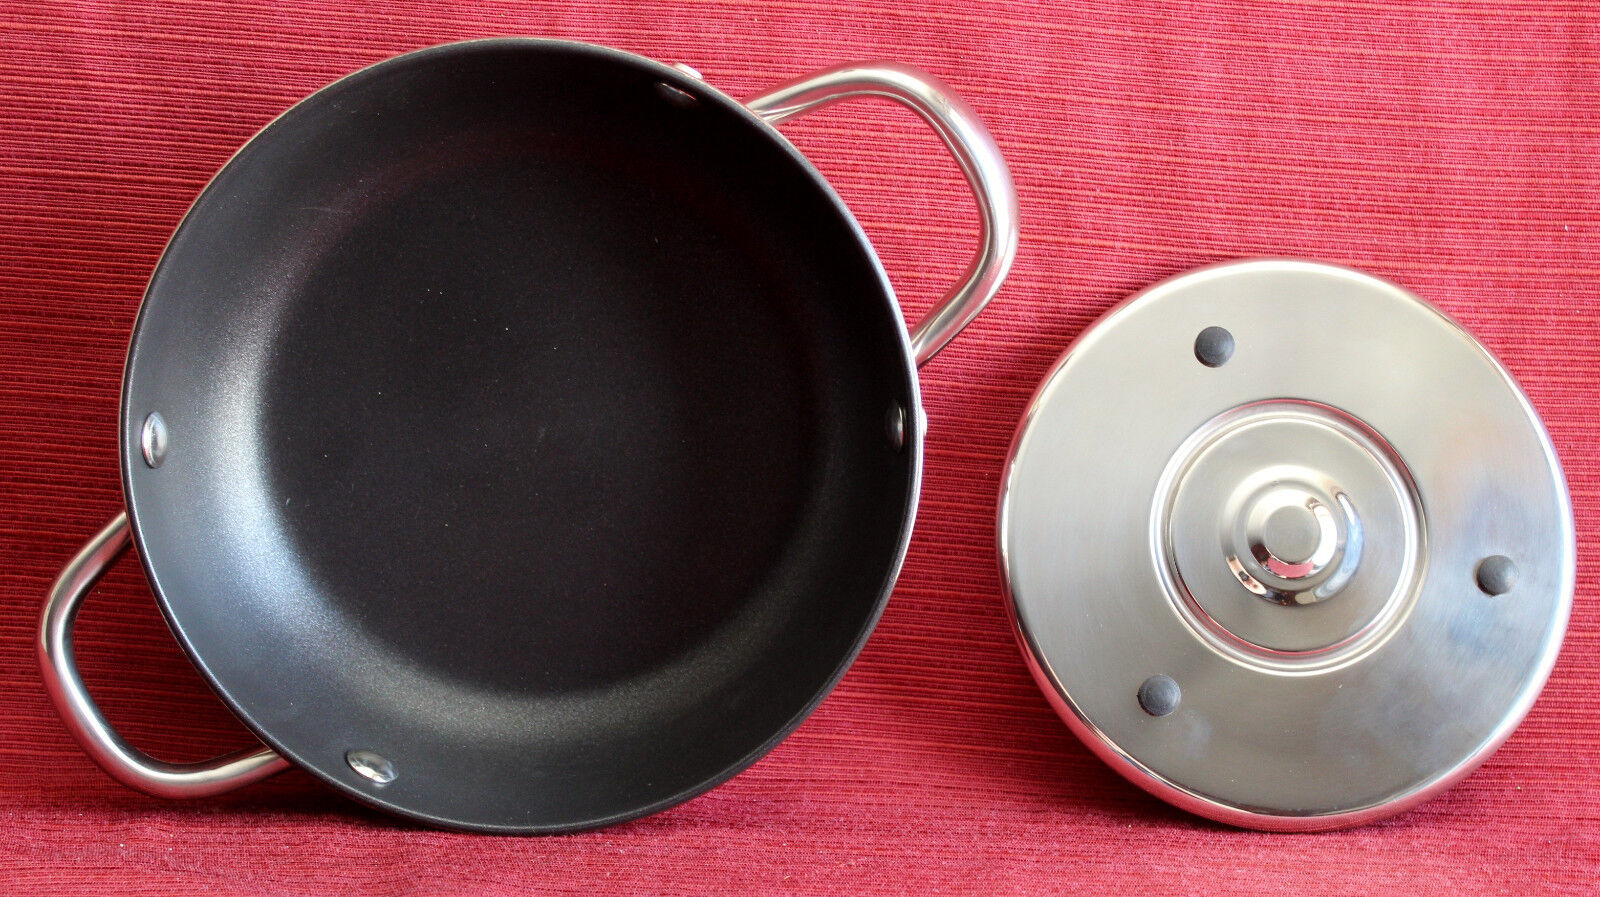 NEW Cooks Essentials Stainless Steel Impactbase Non-Stick Pan w/Magnetic Trivet